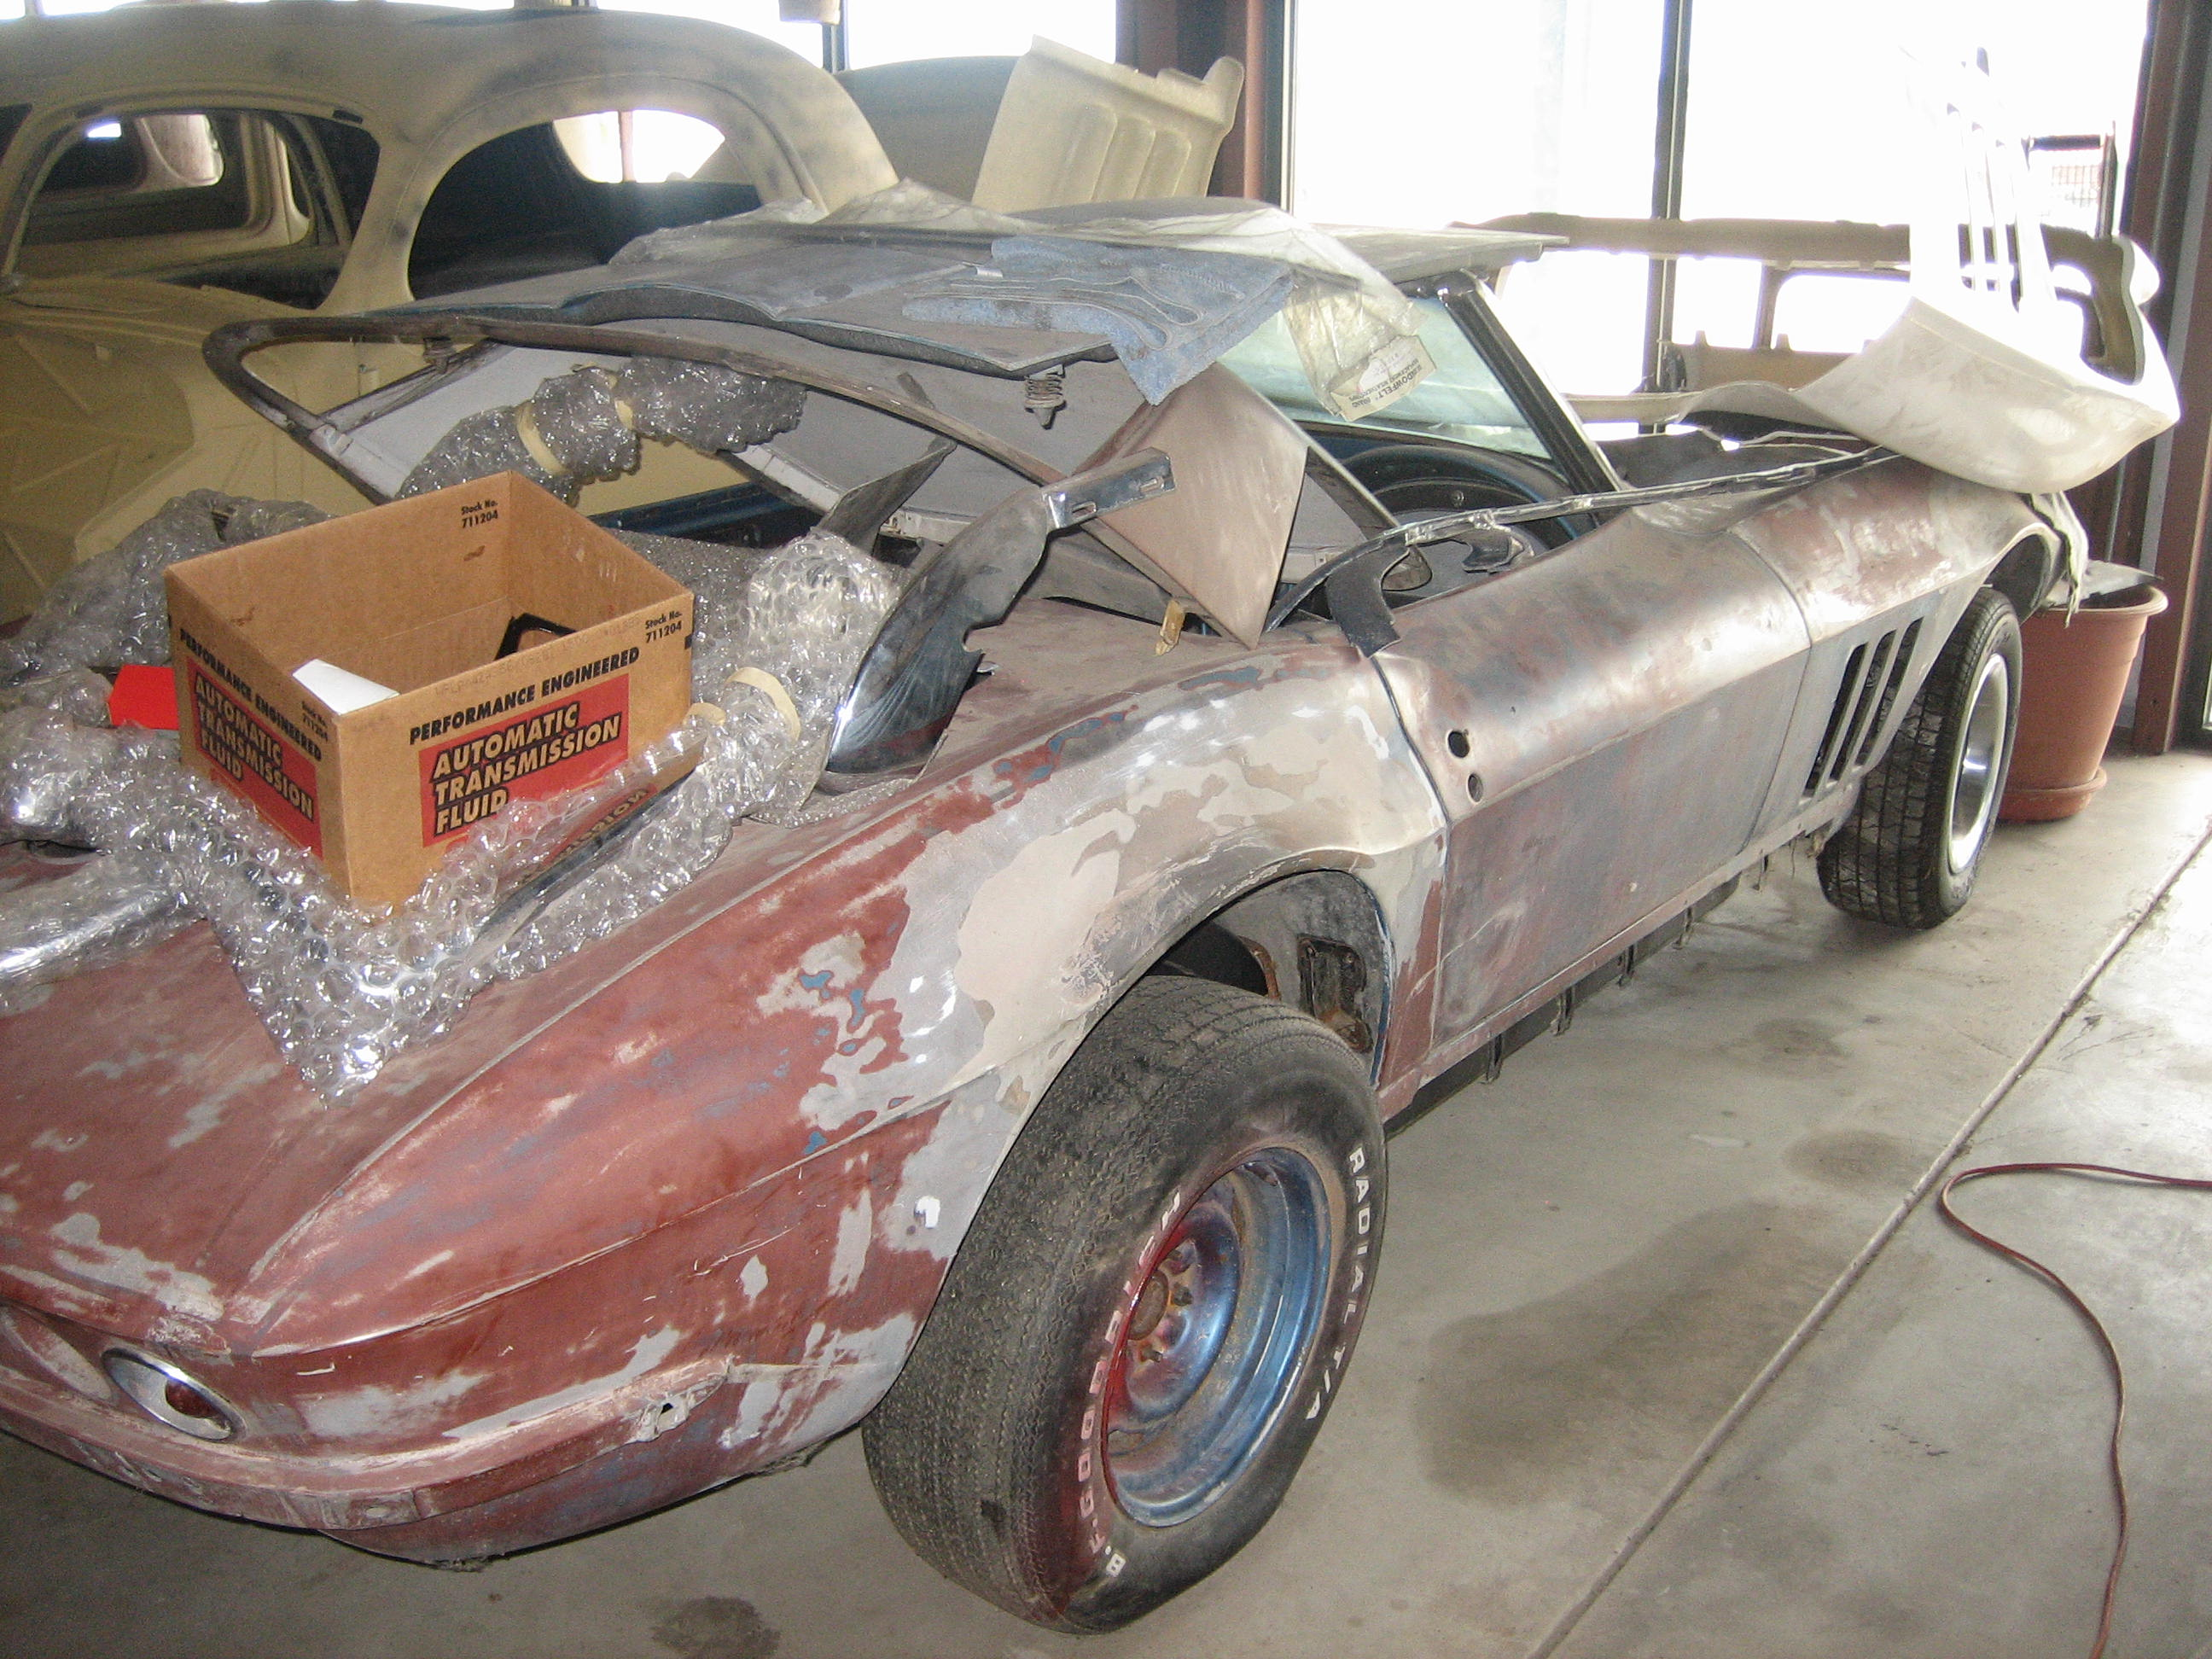 corvette project cars for sale 1963 to 1967 chevrolet corvette for sale for sale at gateway classic cars in our st louis showroom is a 1967 chevrolet corvette this is a rare one read more.